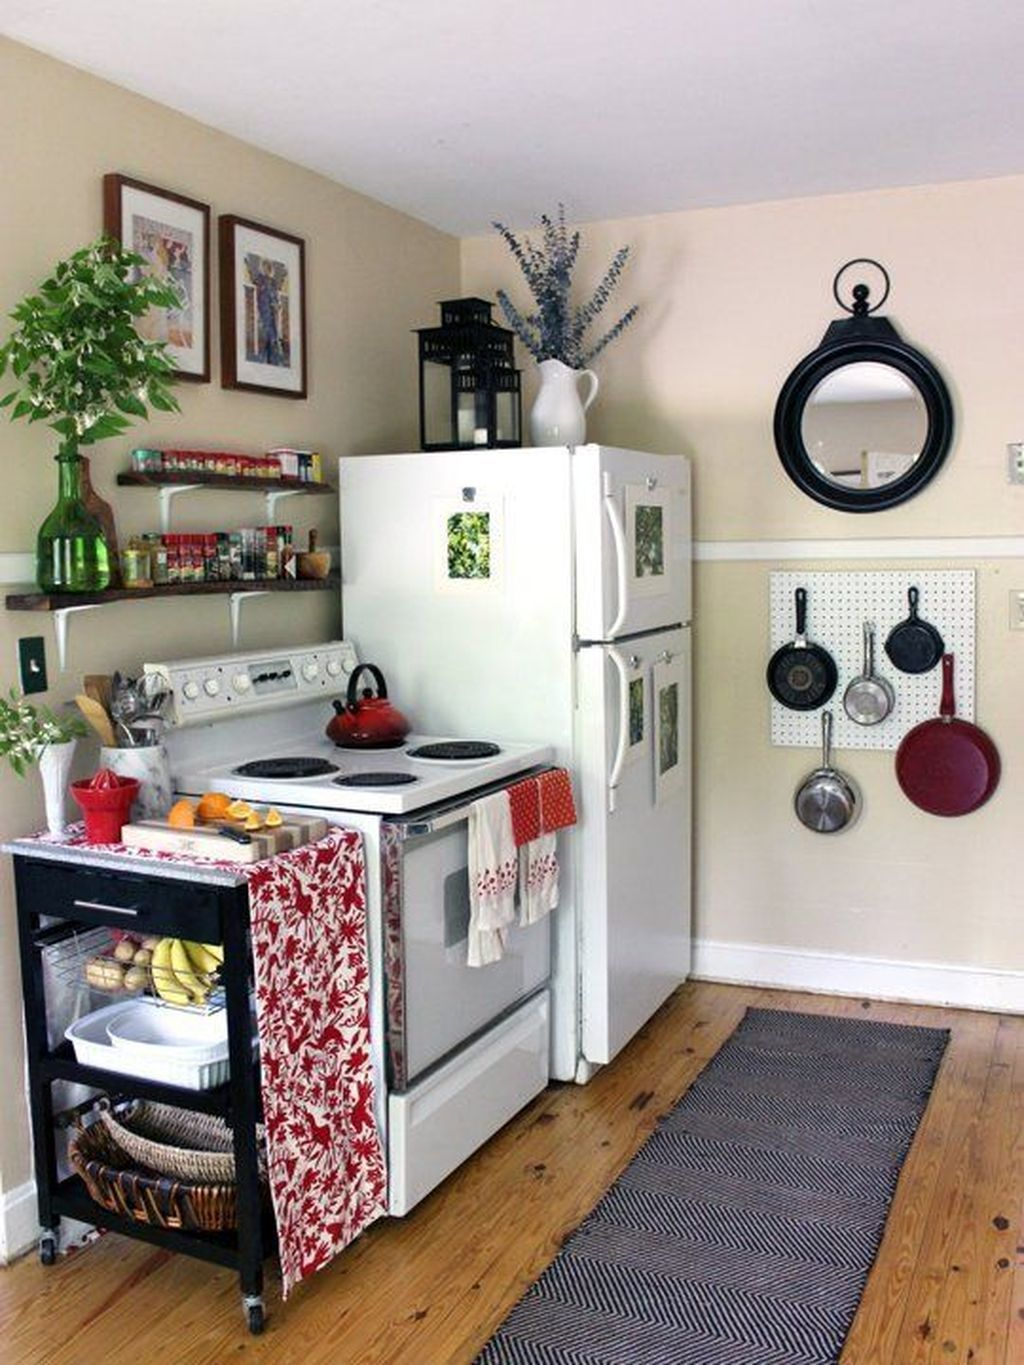 pin by regiane ivo on home kitchen small apartment kitchen small apartment decorating on kitchen organization small apartment id=88368